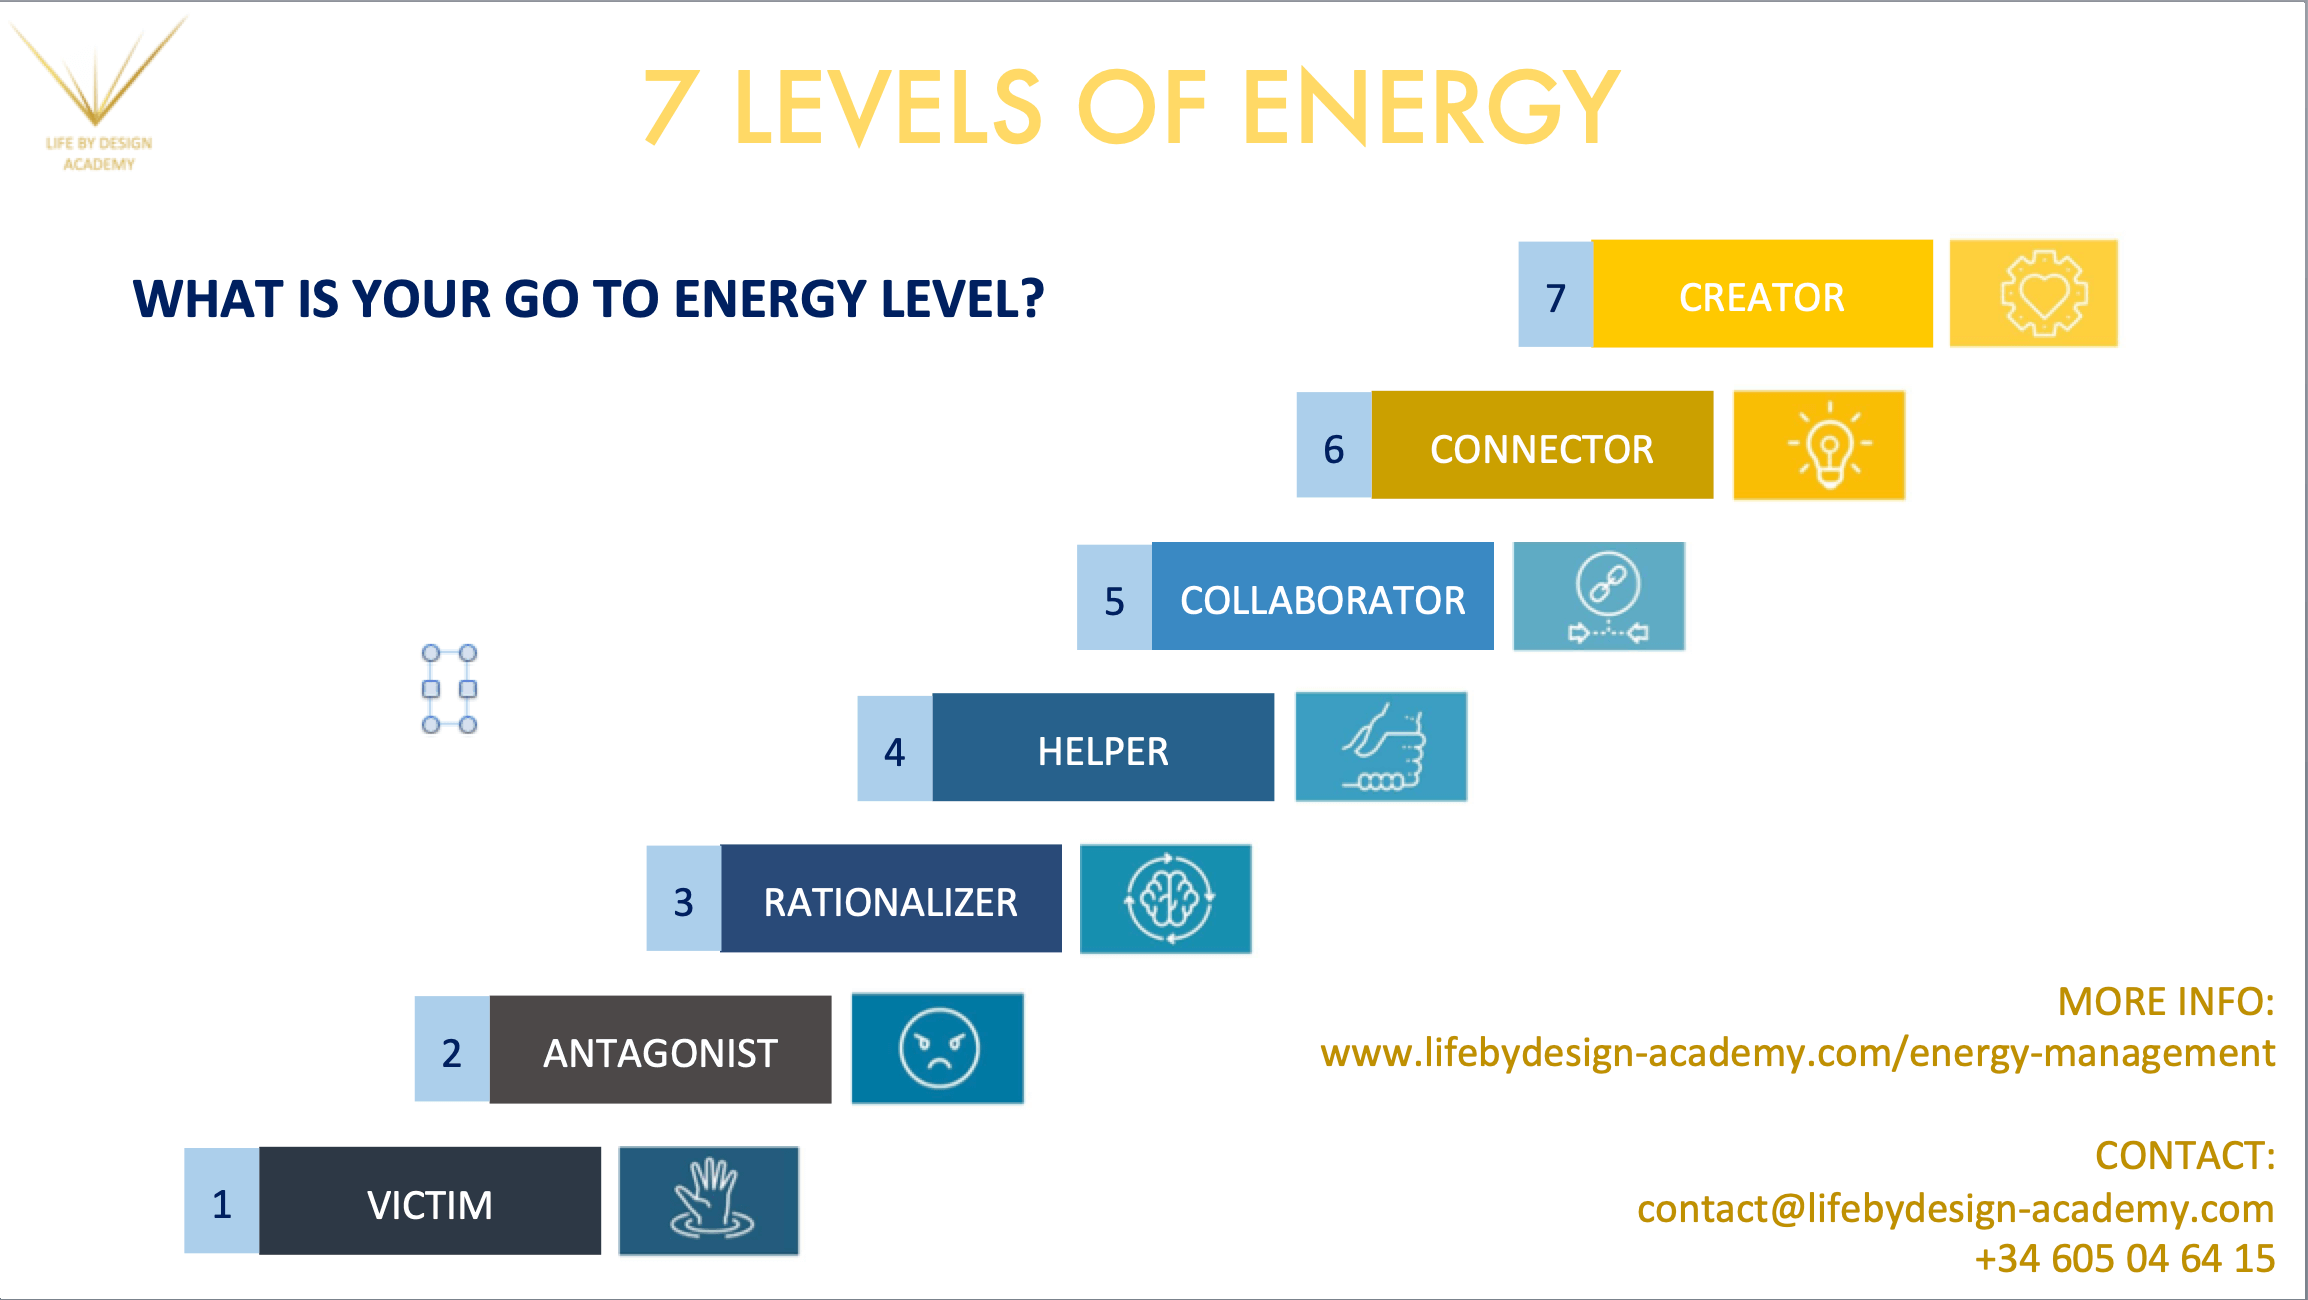 7 Levels of Energy Infographic